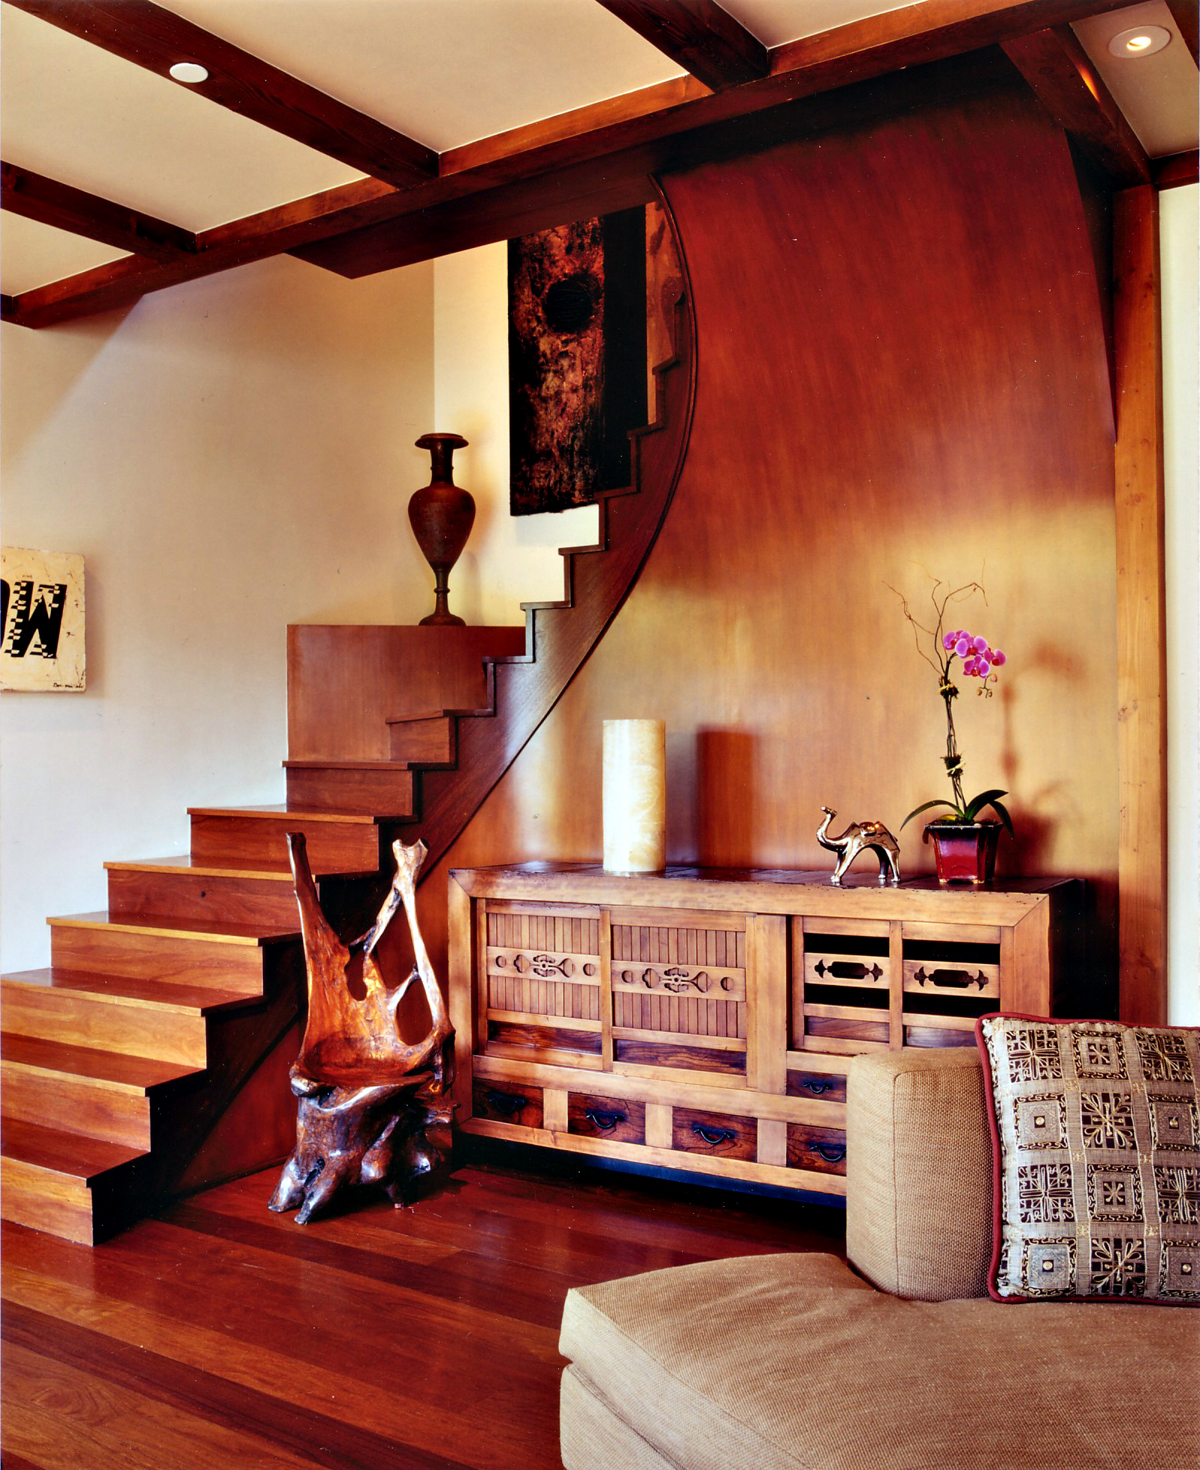 Day-Residence-staircase.jpg